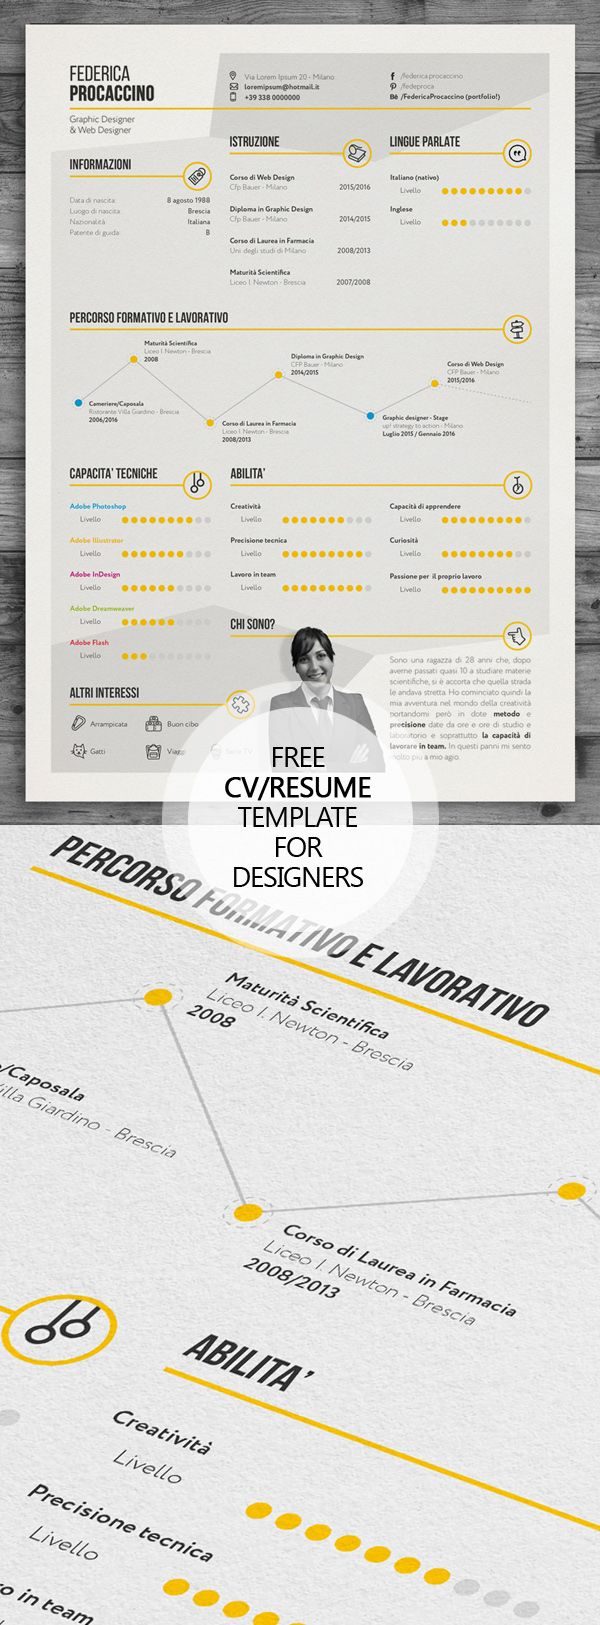 15 Free PSD CV/Resume and Cover Letter Templates Resume